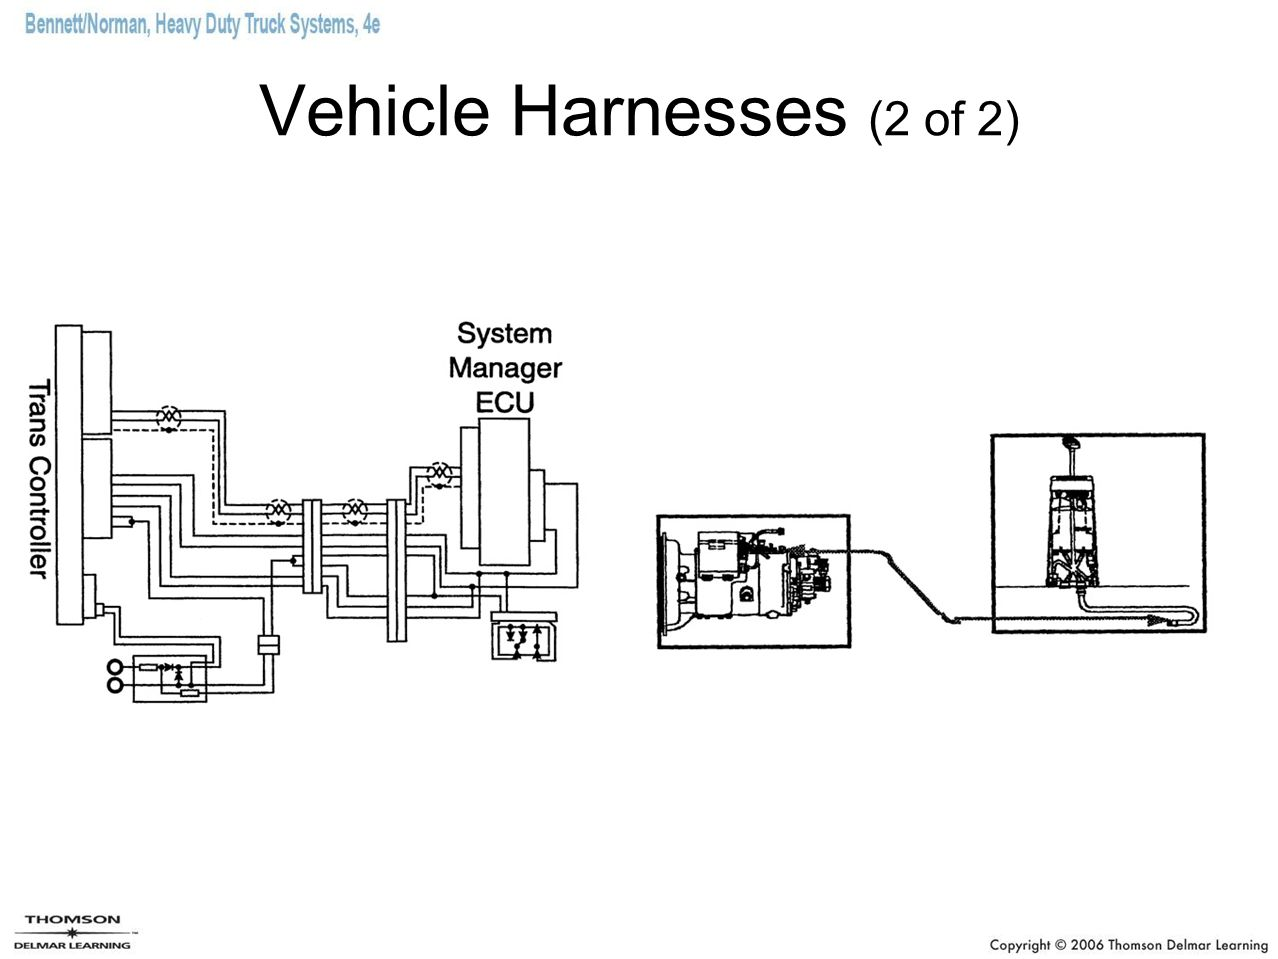 Vehicle Harnesses (2 of 2)